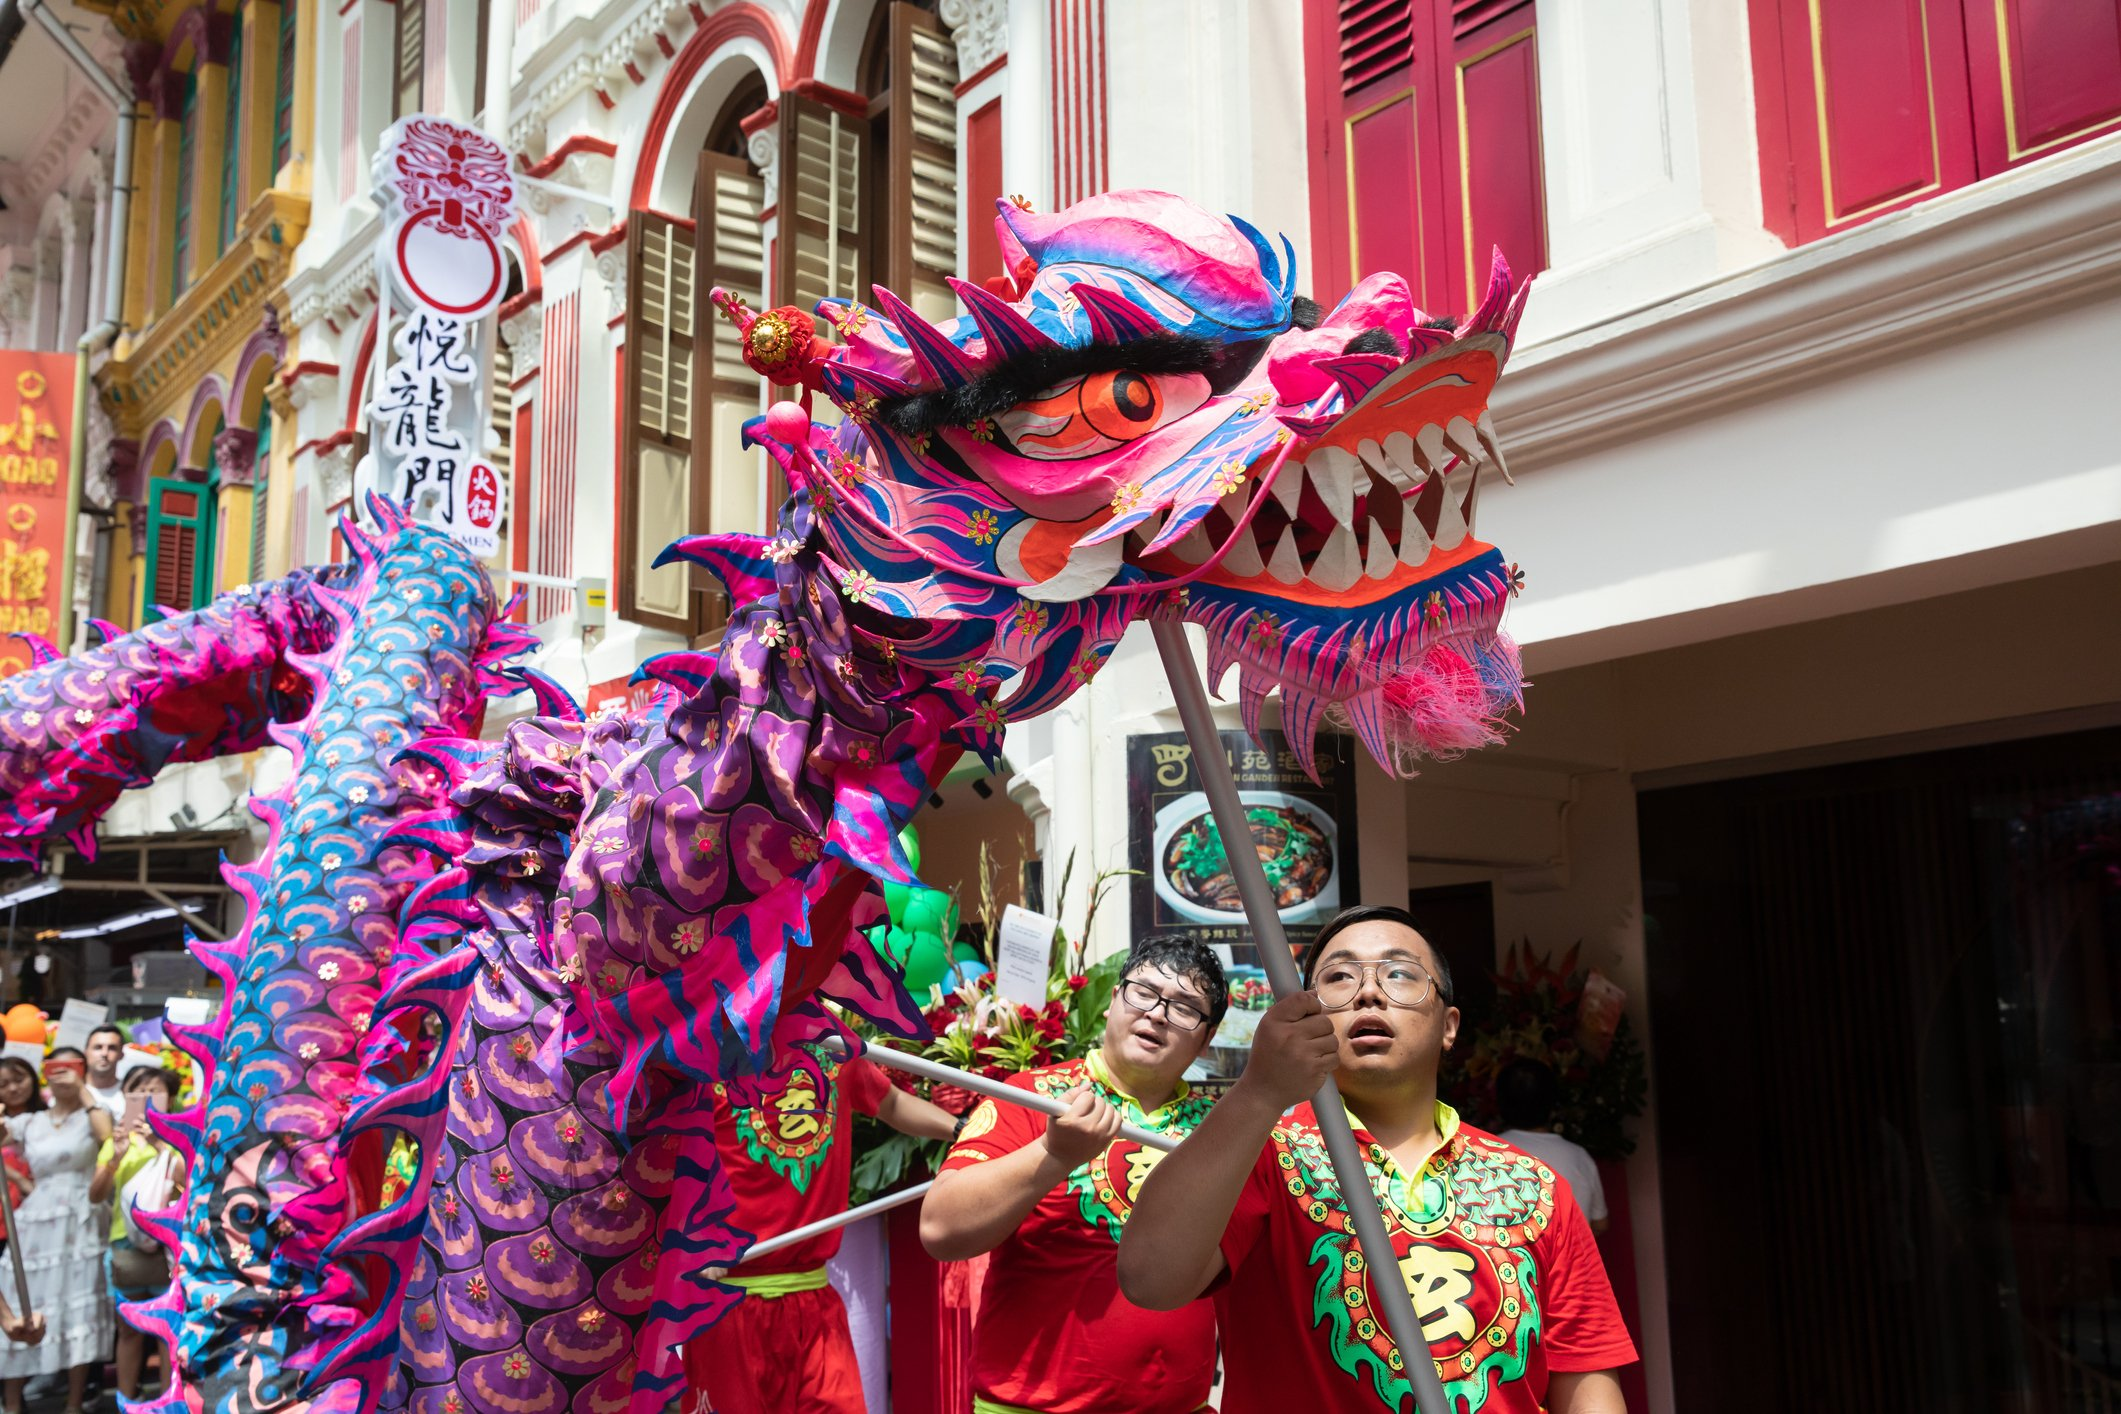 Dragon dance outside shophouse in Chinatown